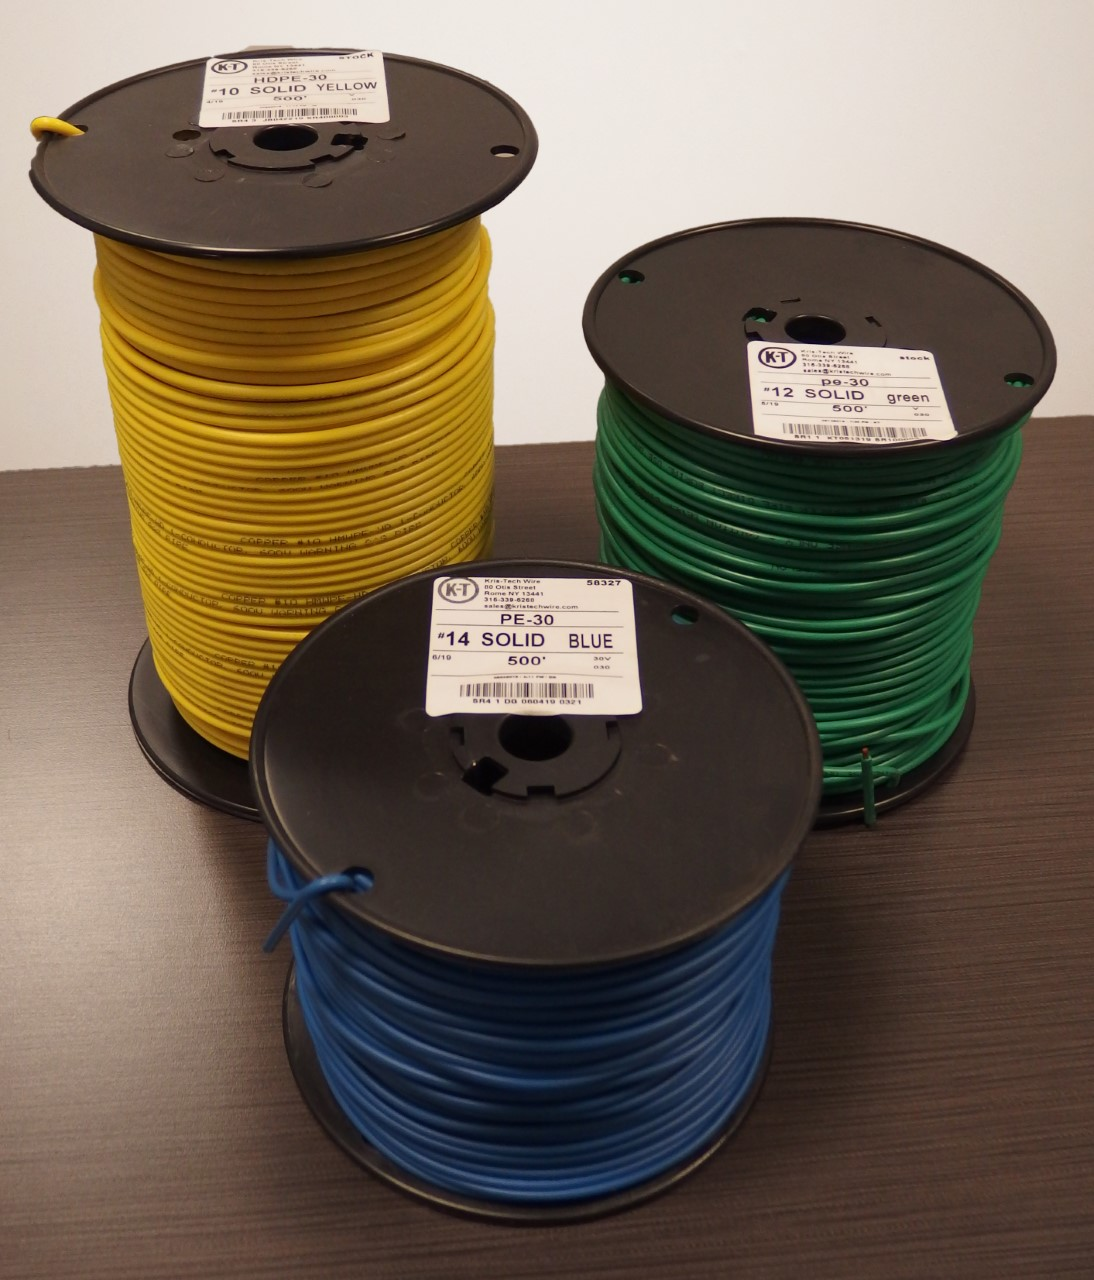 Copper Clad Tracer Wire (30 or 45 mil) on